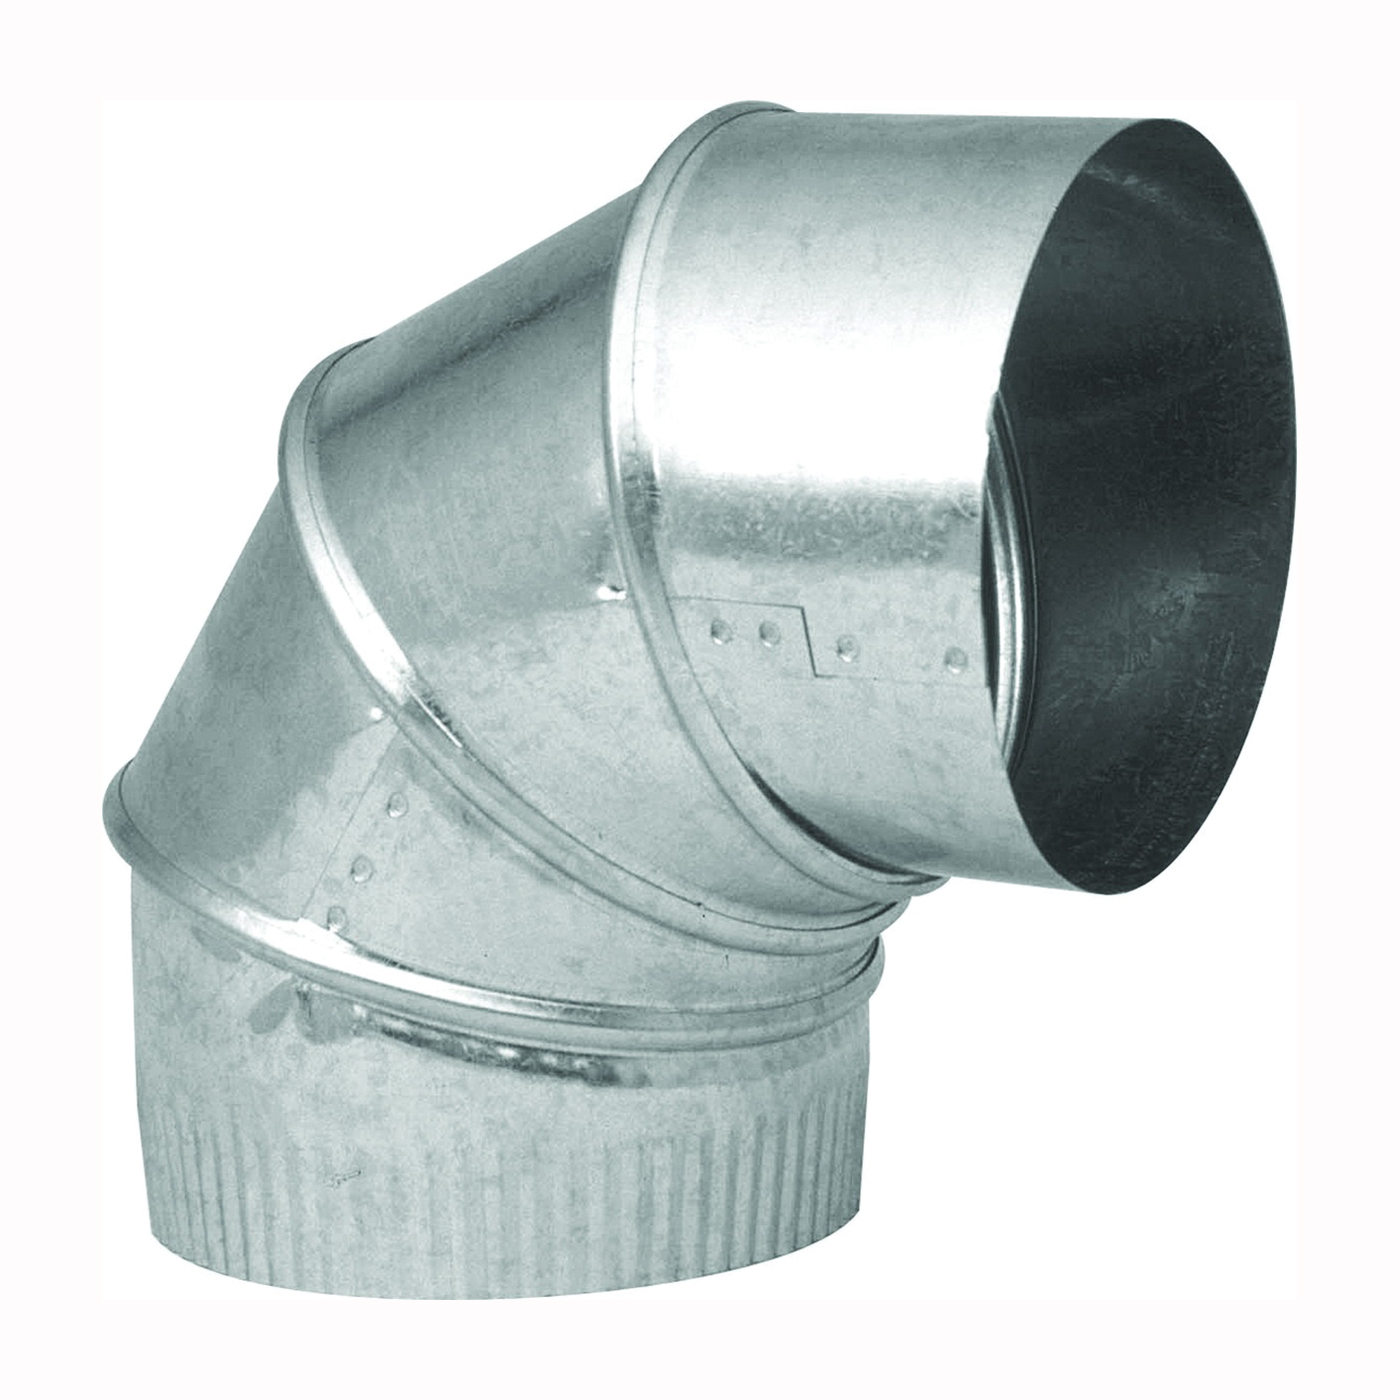 Picture of Imperial GV0305-C Stove Pipe Elbow, 9 in Connection, 26 Gauge, Steel